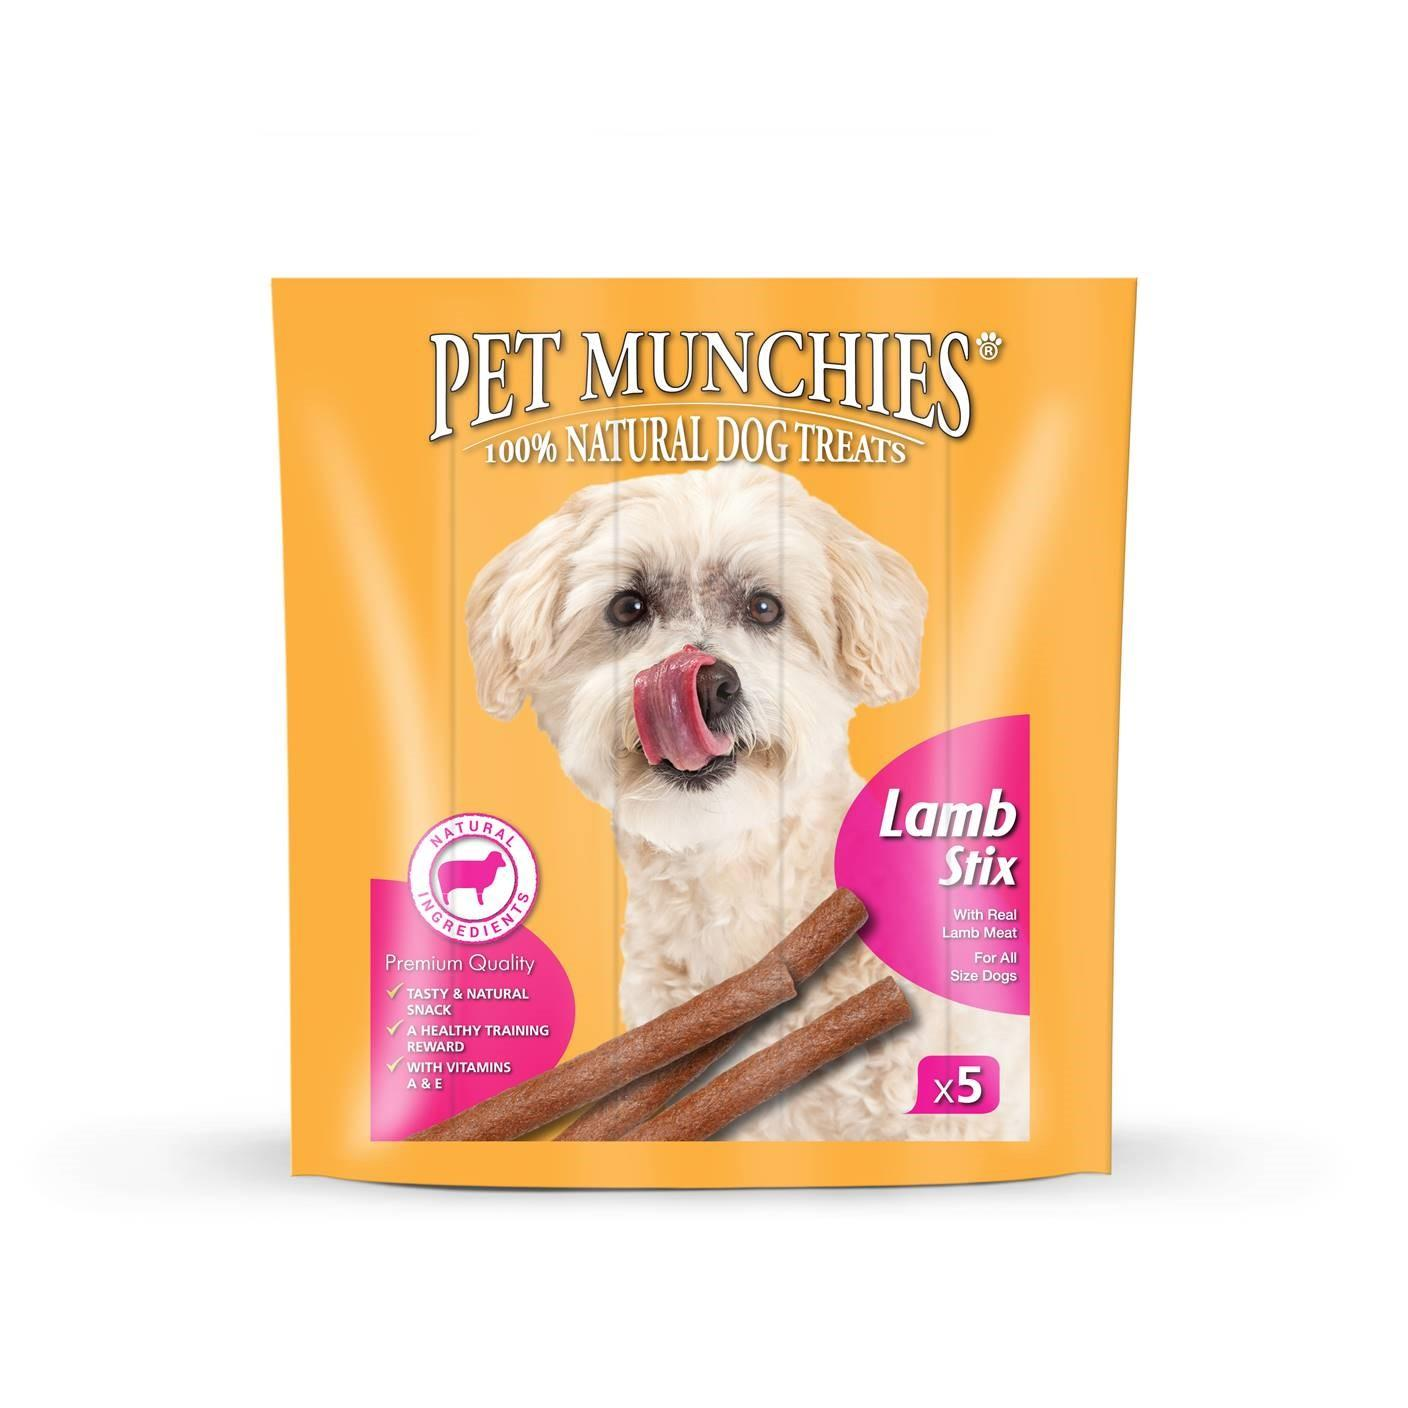 Pet Munchies Lamb Stix dog treats